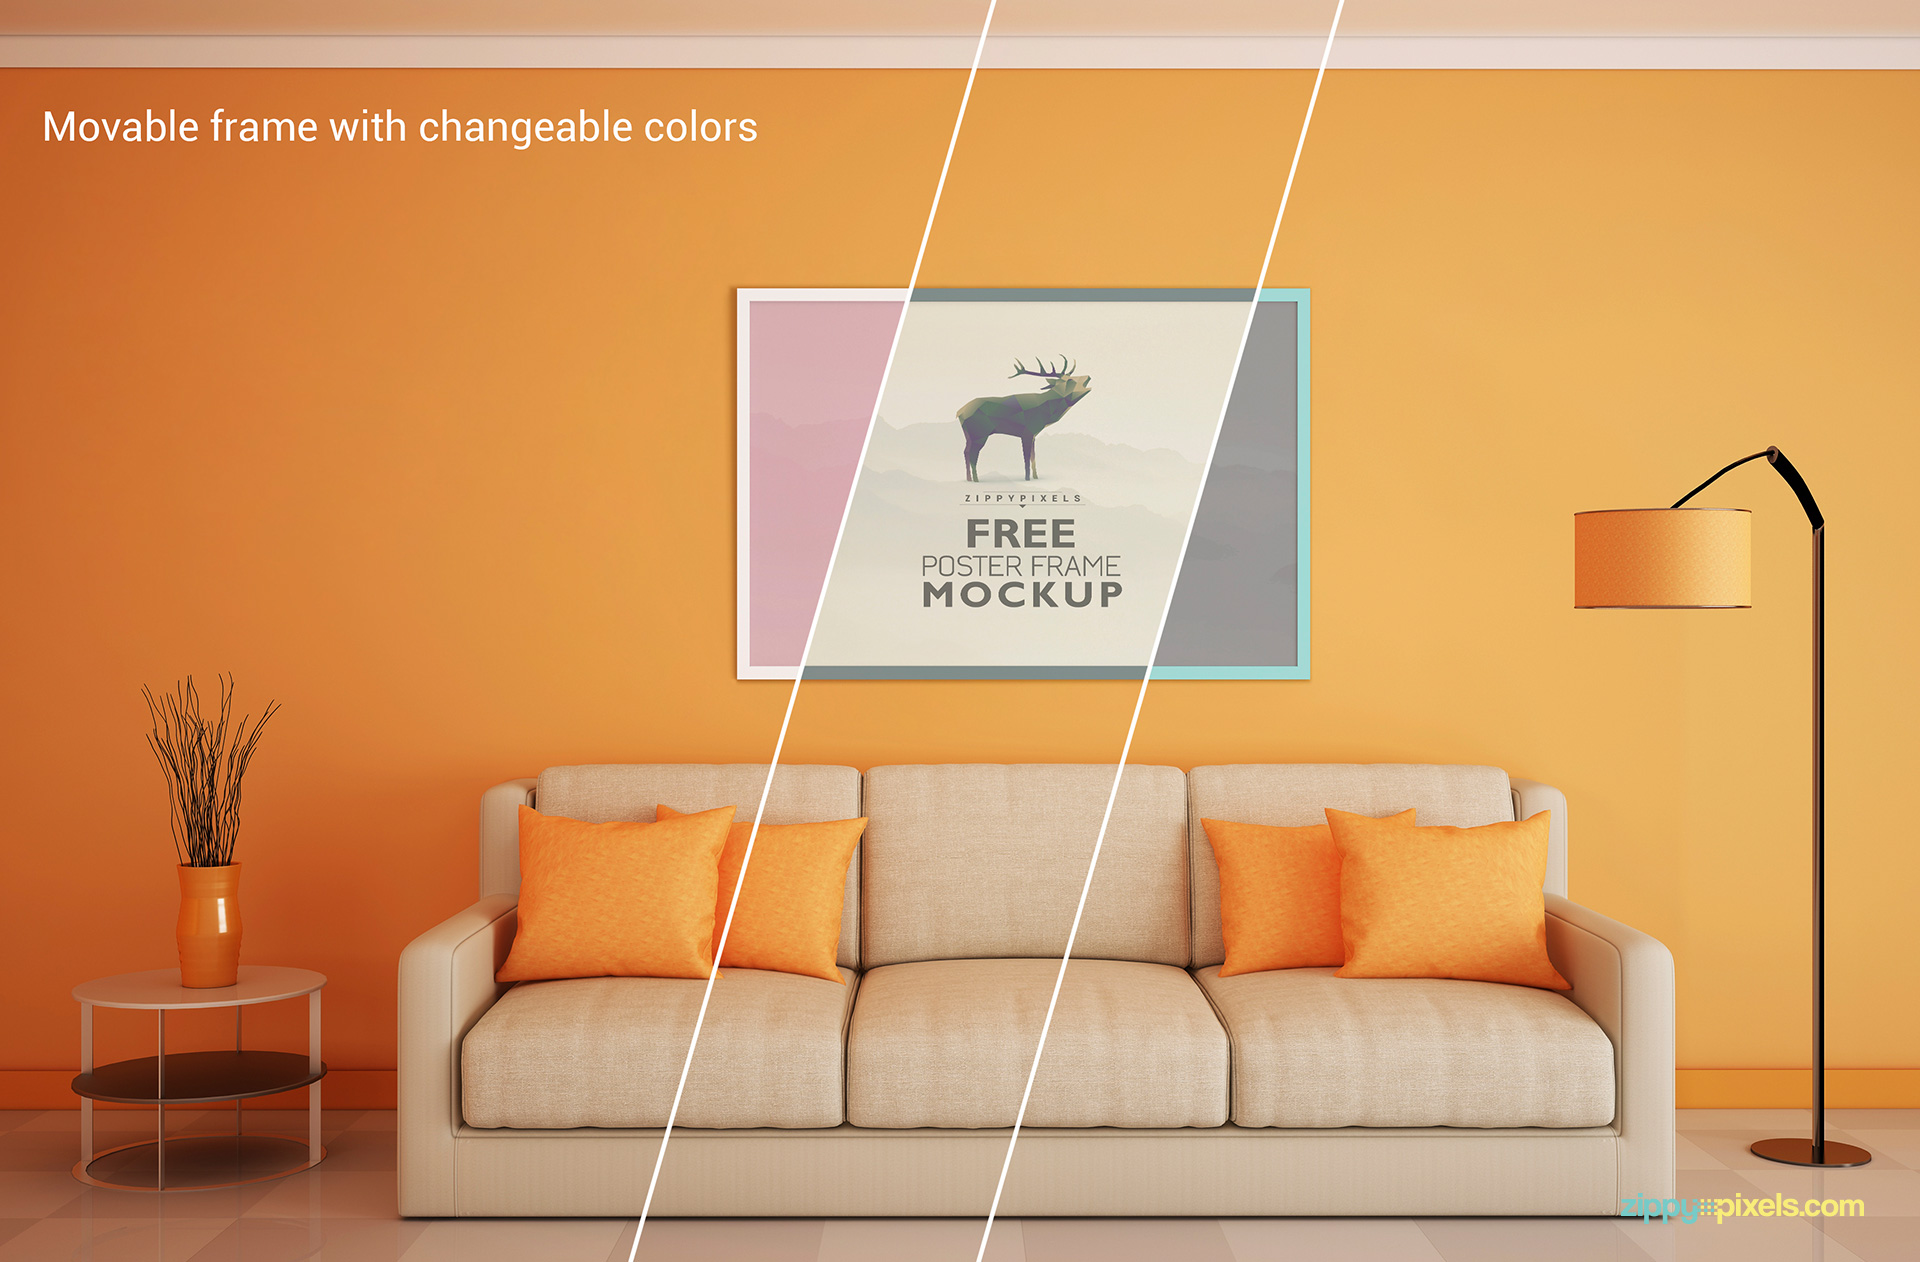 Free Poster Mockup with Customizable Frame, Background, Shadows